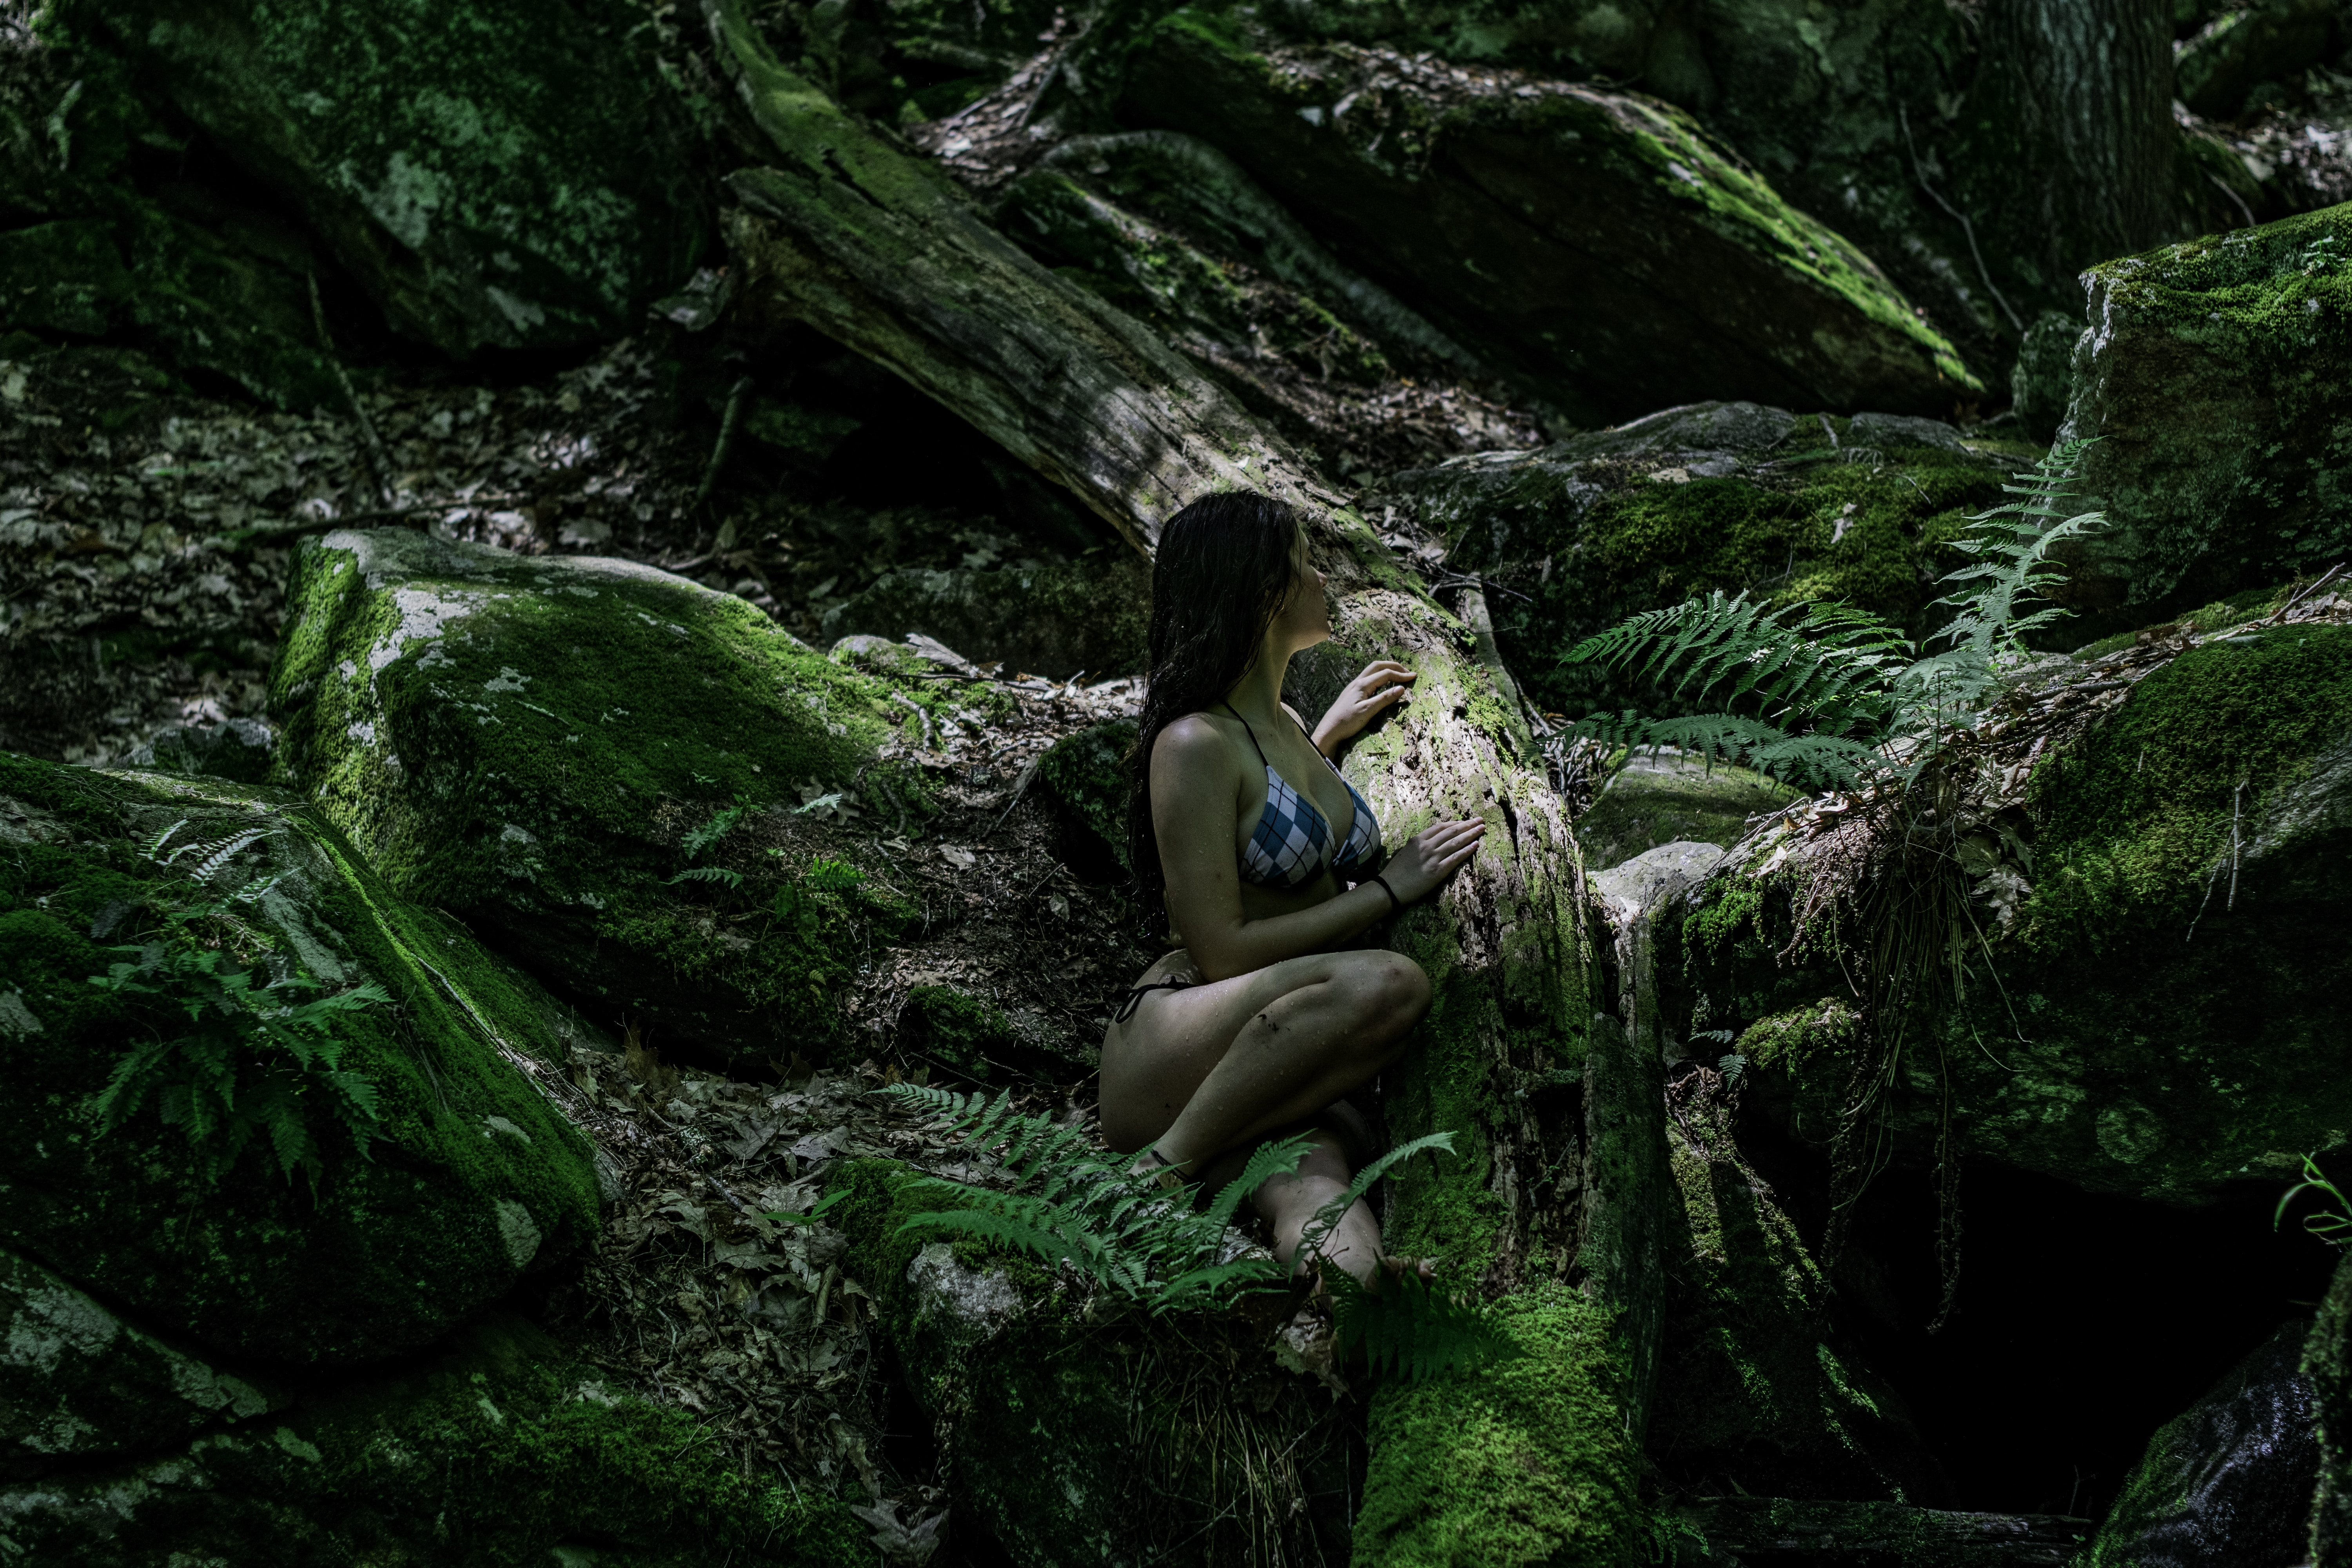 A woman in a bikini among mossy logs and rocks in a forest in Wilton